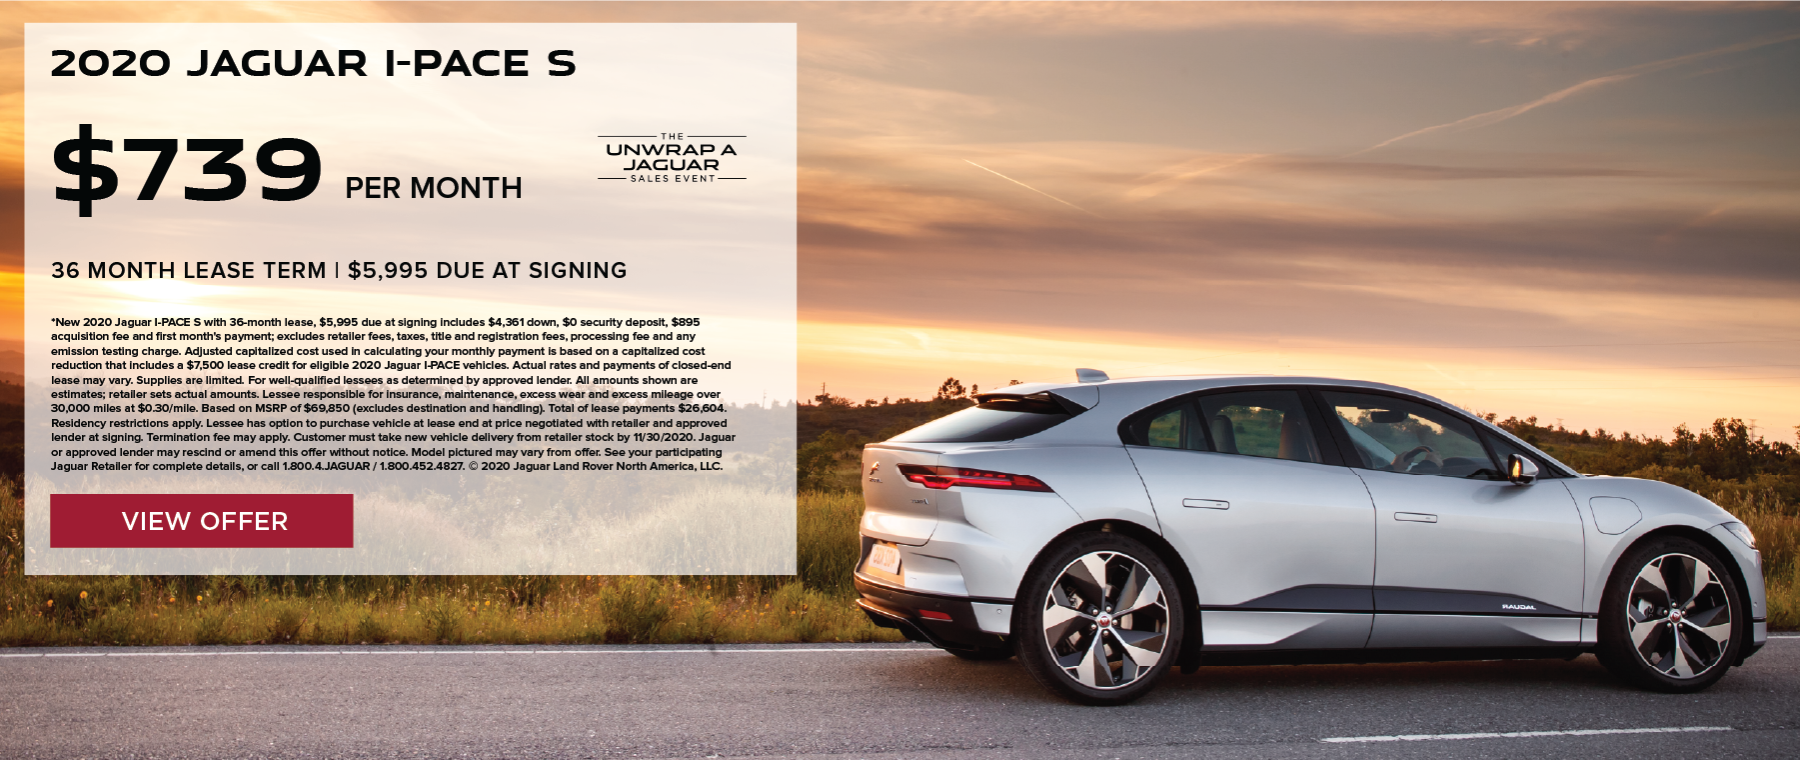 2020 JAGUAR I-PACE S. $739 PER MONTH. 36 MONTH LEASE TERM. $5,995 CASH DUE AT SIGNING. $0 SECURITY DEPOSIT. 10,000 MILES PER YEAR. EXCLUDES RETAILER FEES, TAXES, TITLE AND REGISTRATION FEES, PROCESSING FEE AND ANY EMISSION TESTING CHARGE. OFFER ENDS 11/30/2020.